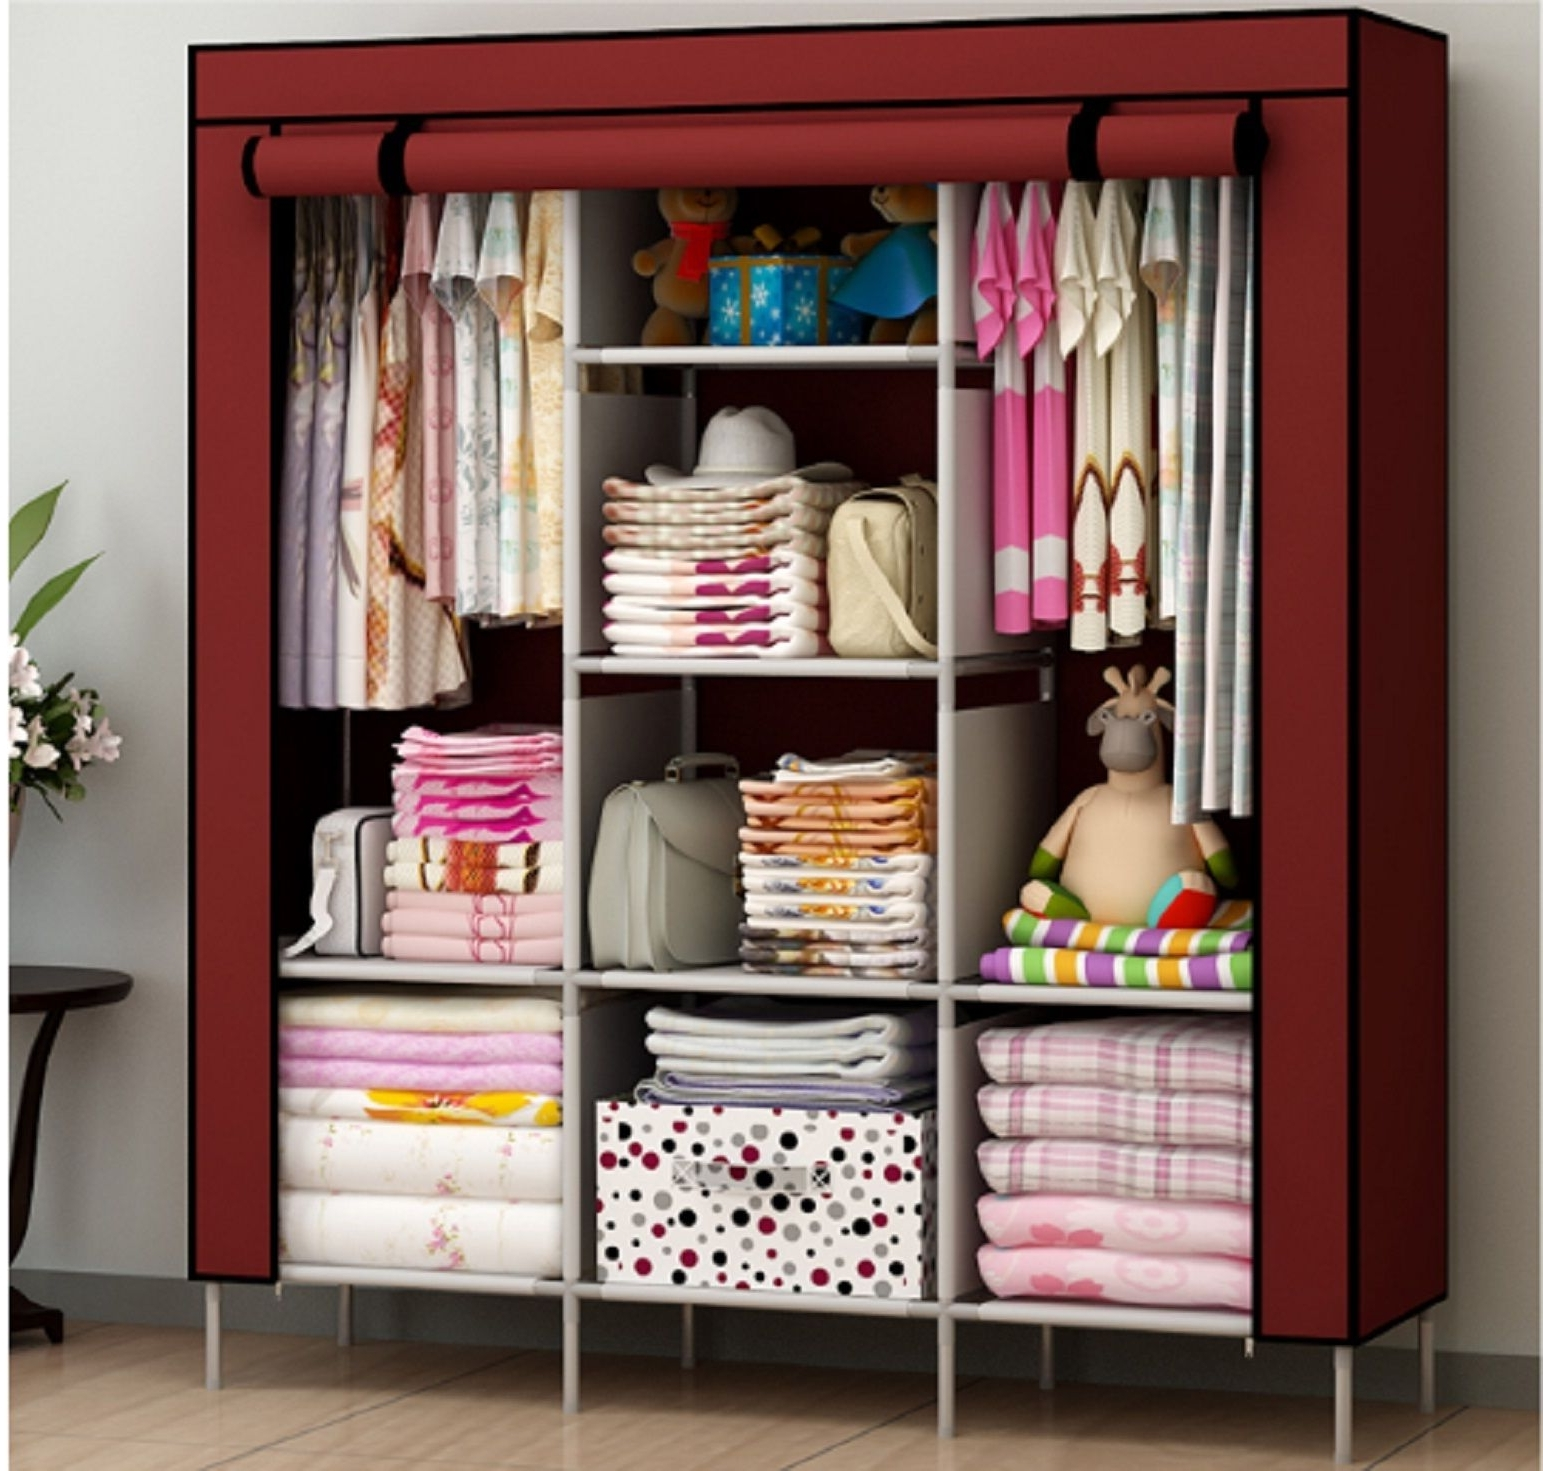 Trendy Closet Storage : California Closets Locations Wardrobe Storage Pertaining To Bedroom Wardrobes Storages (View 15 of 15)